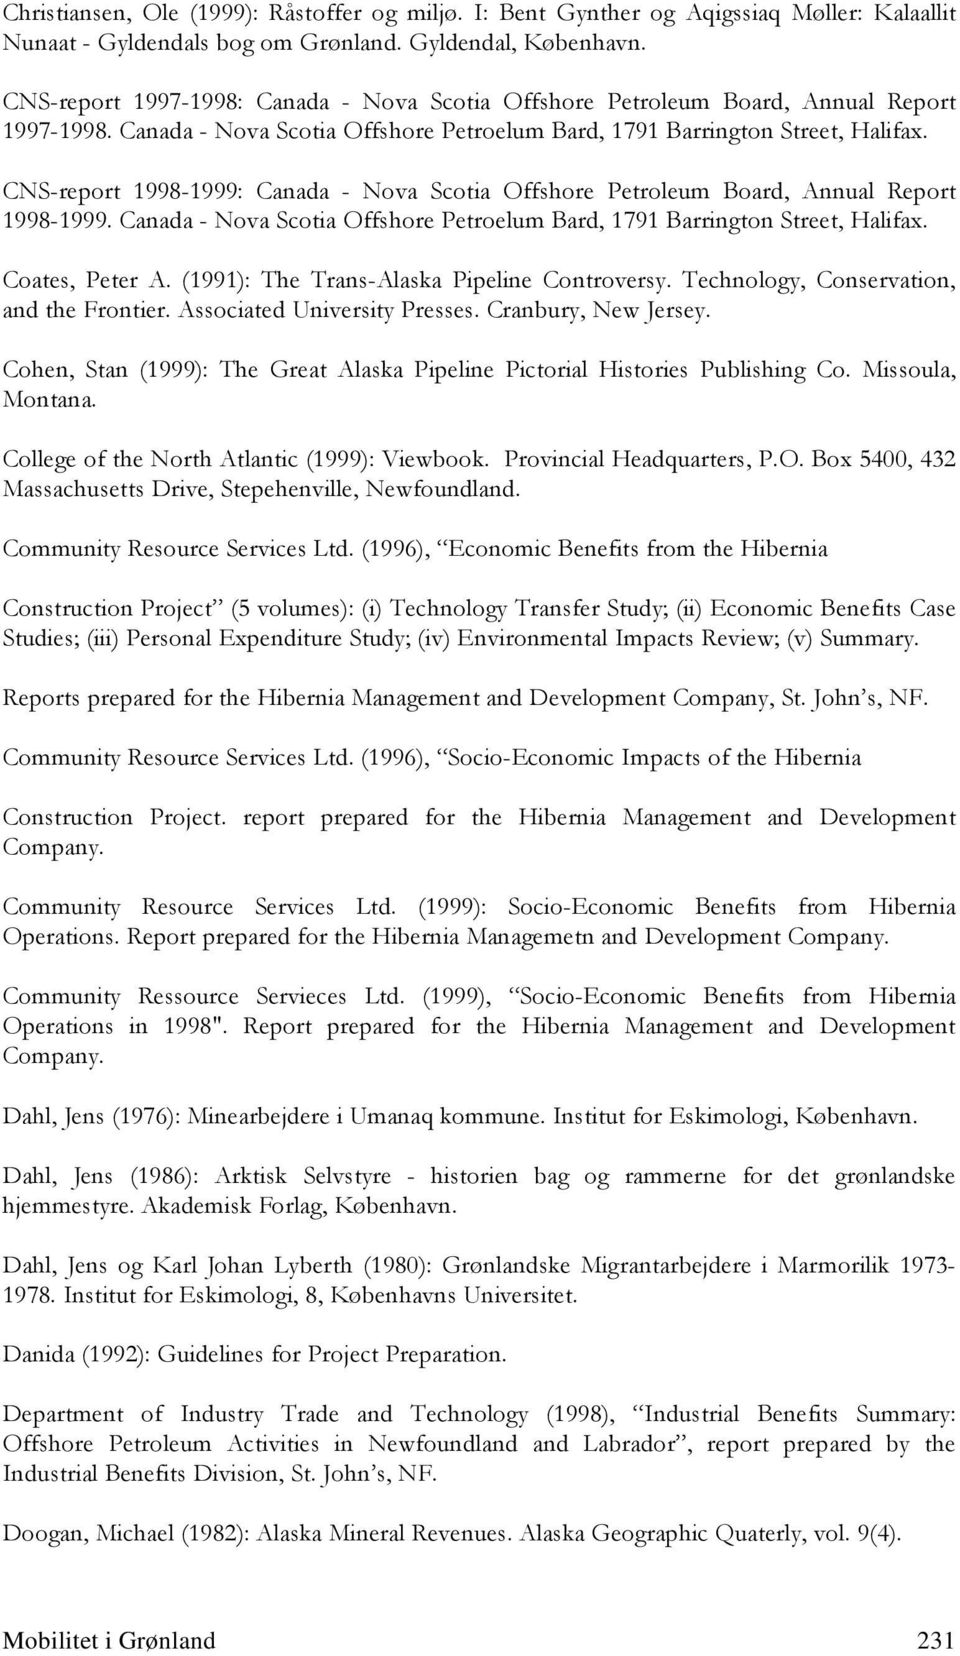 CNS-report 1998-1999: Canada - Nova Scotia Offshore Petroleum Board, Annual Report 1998-1999. Canada - Nova Scotia Offshore Petroelum Bard, 1791 Barrington Street, Halifax. Coates, Peter A.